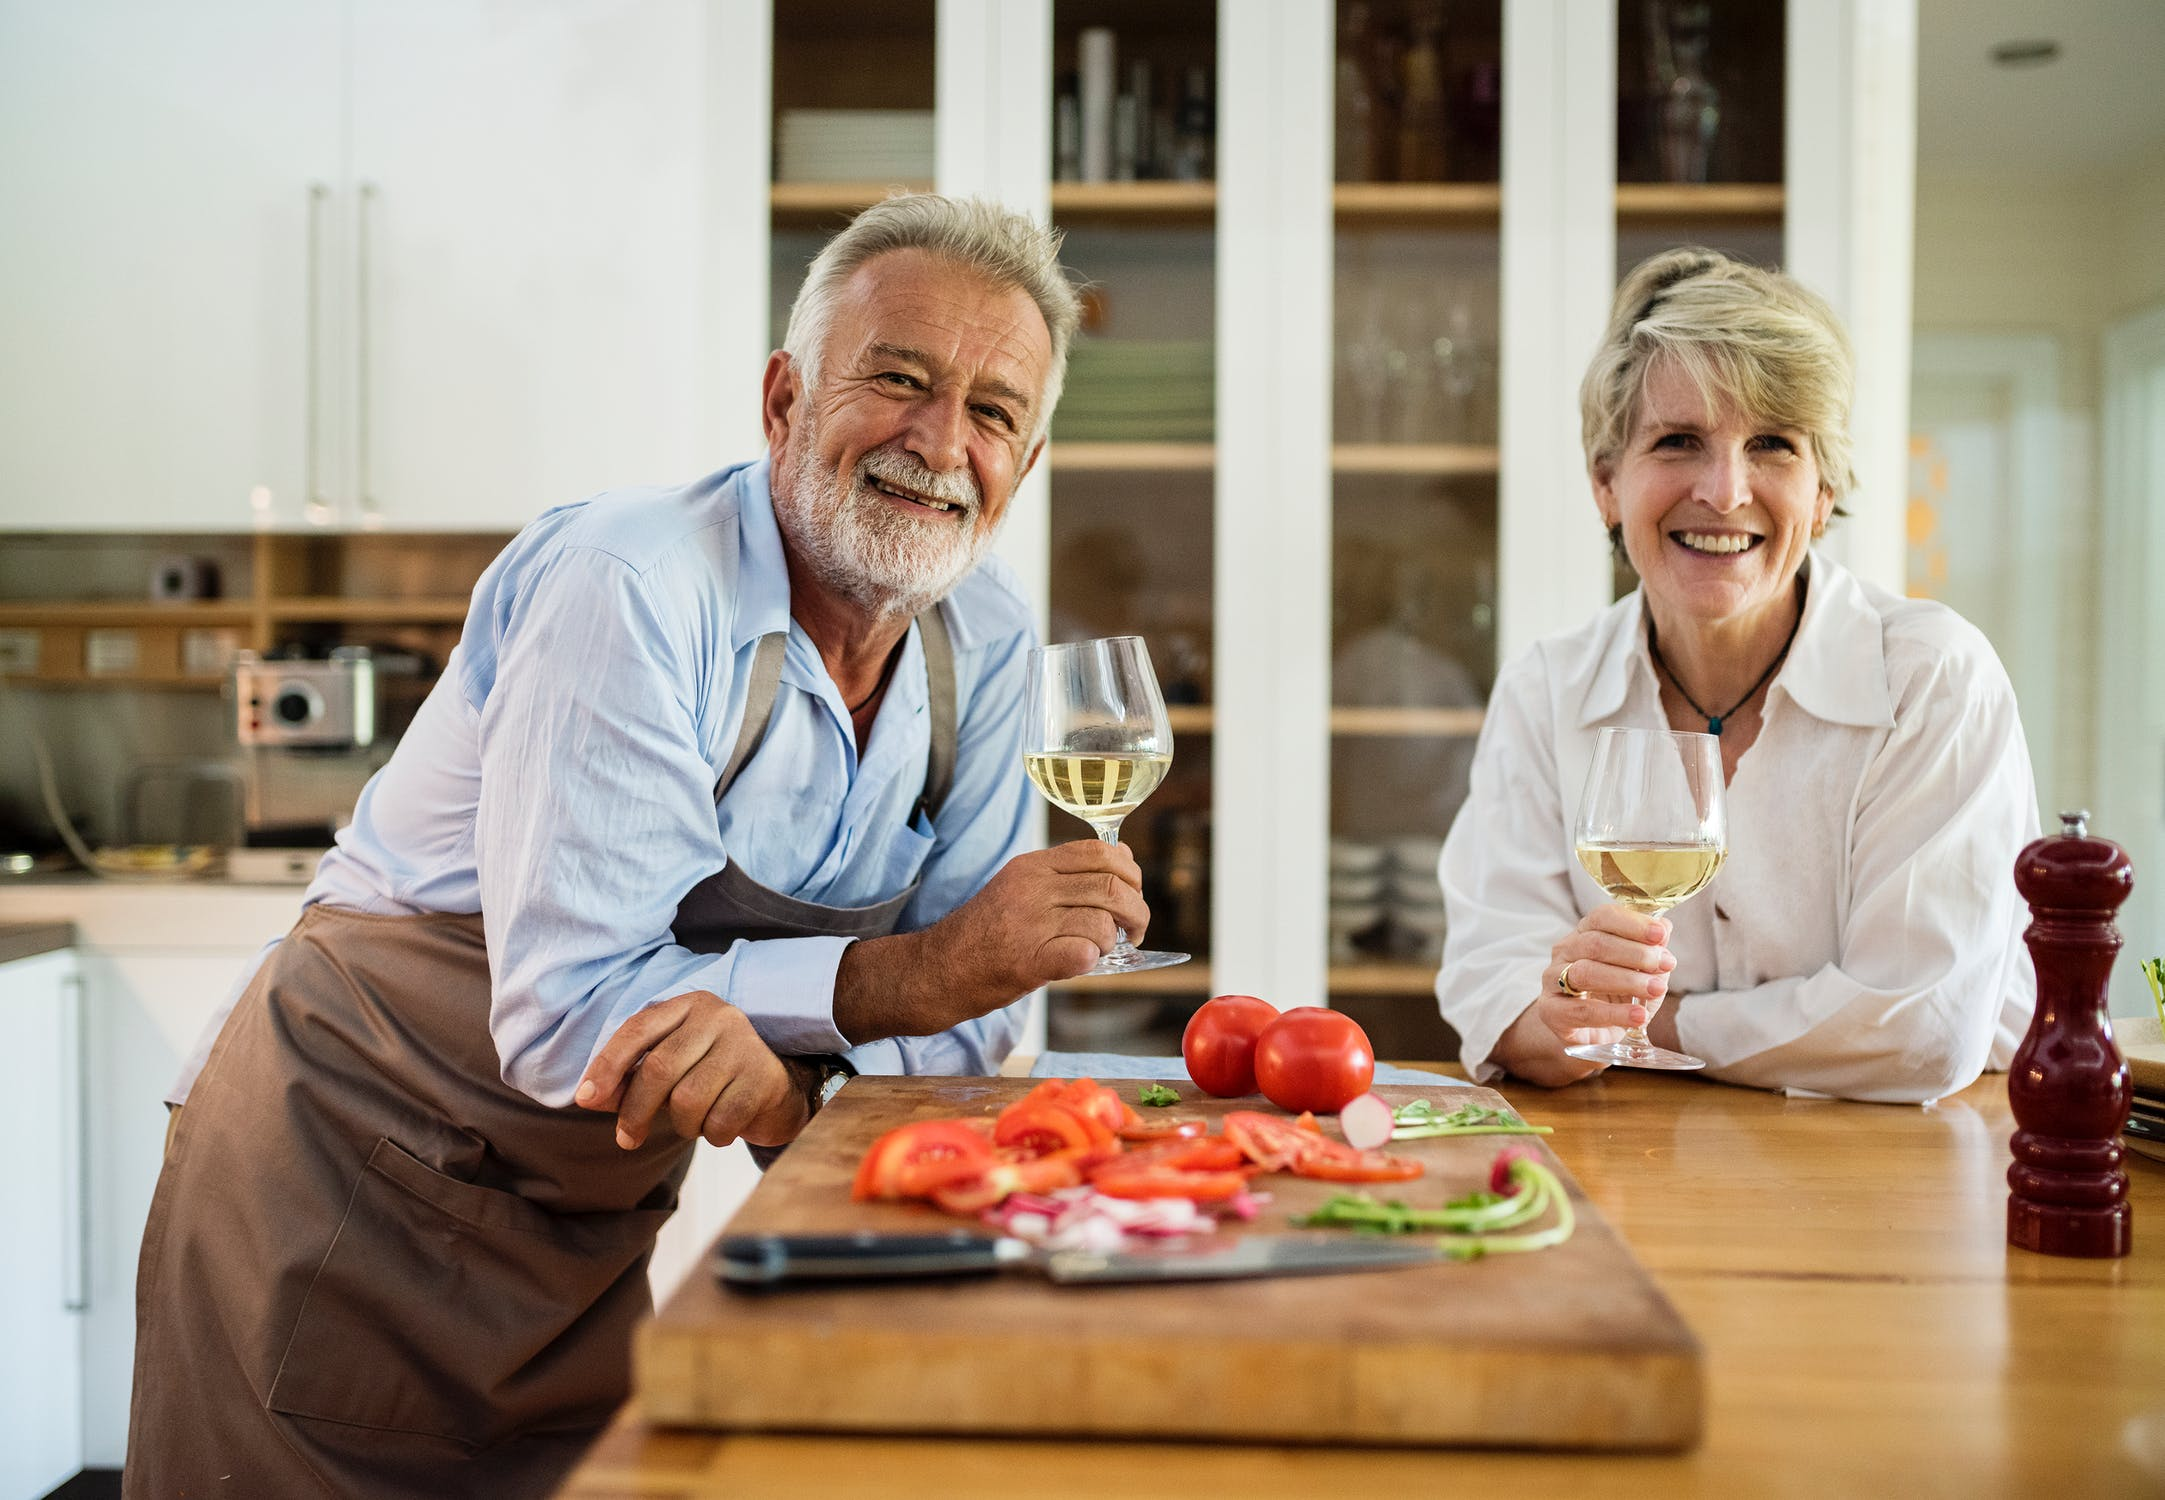 5 Ways to Beat the Retirement Blues